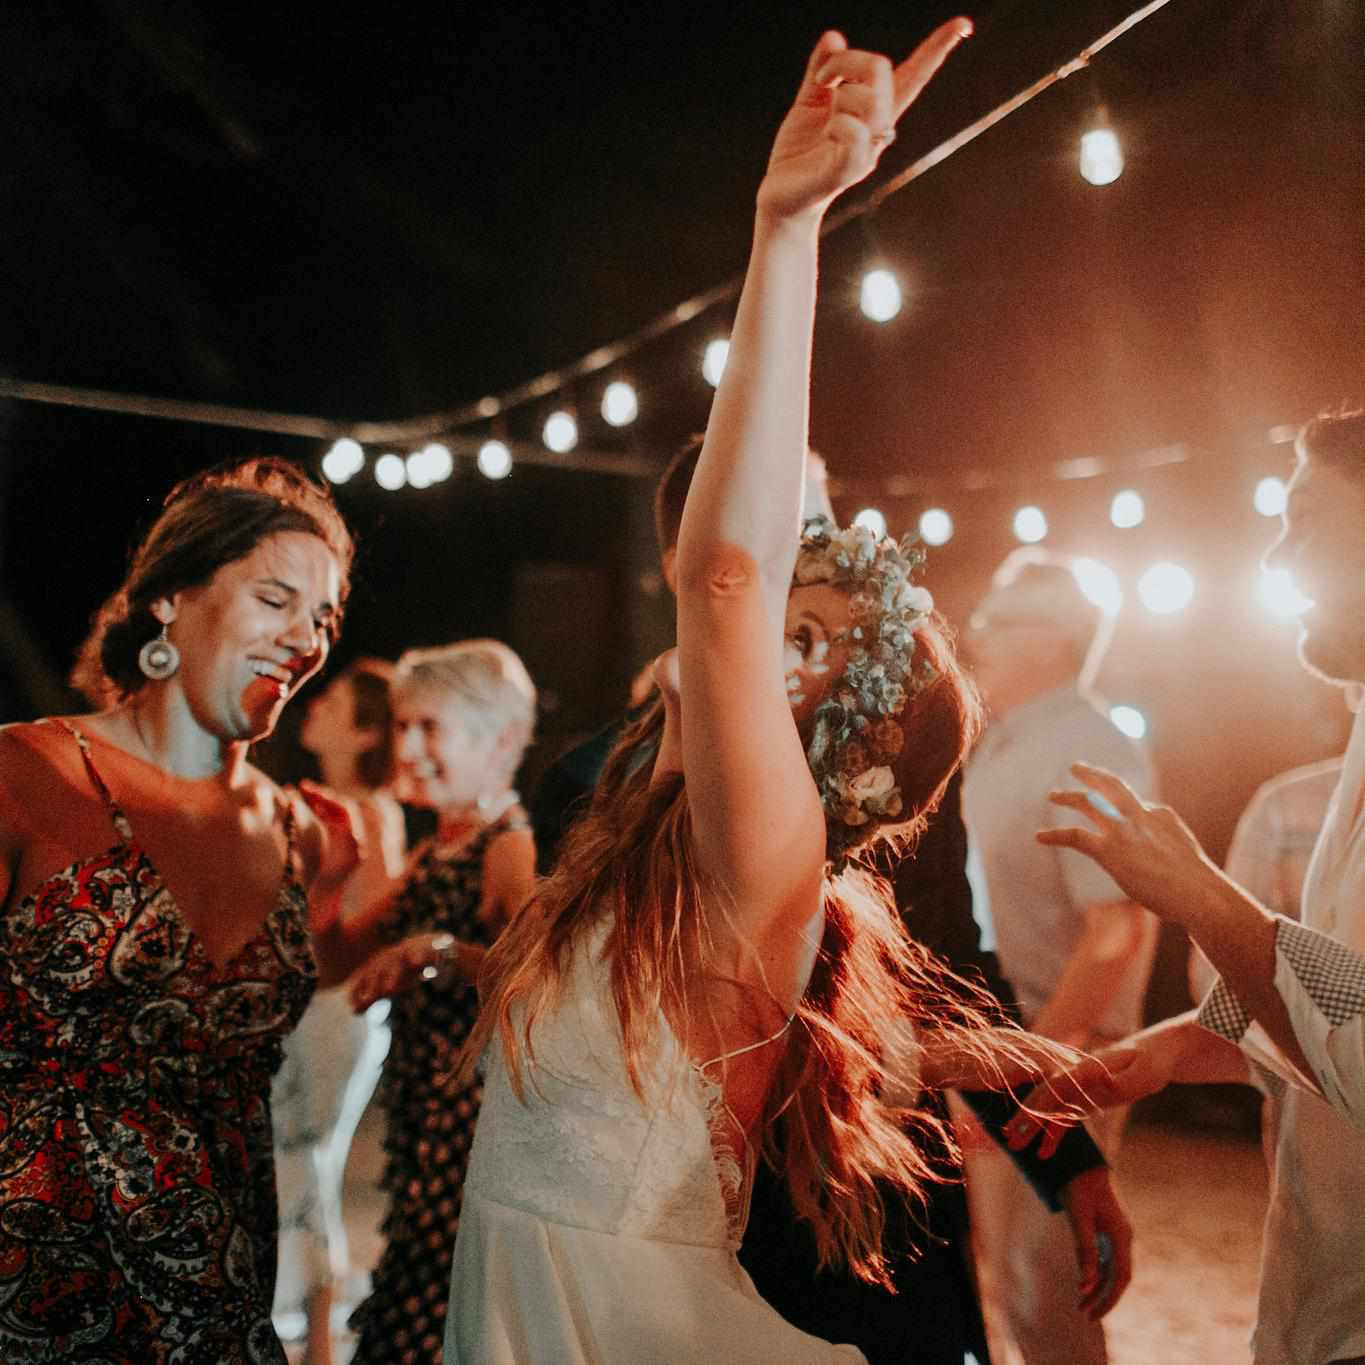 Hold My Drink: How to Make the Best Wedding Reception Dance